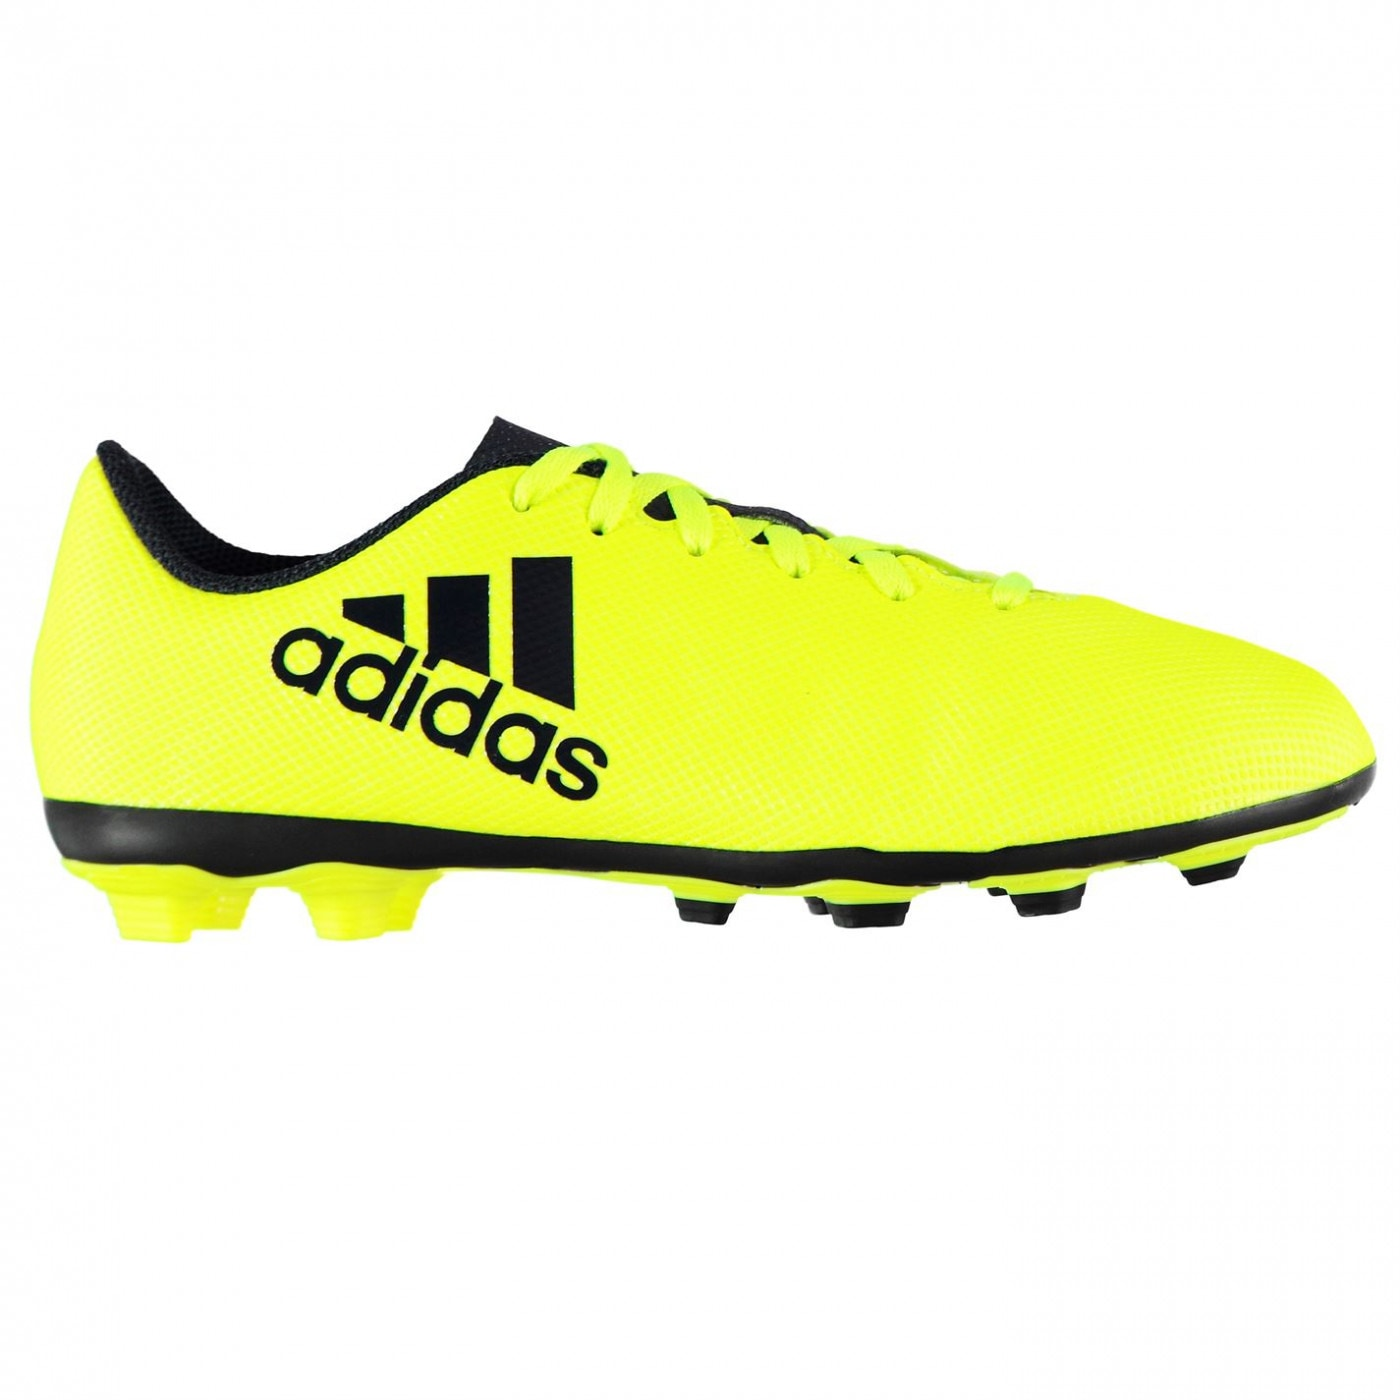 e02baed8f947 Adidas X 17.4 FG Junior Football Boots - ALIATIC